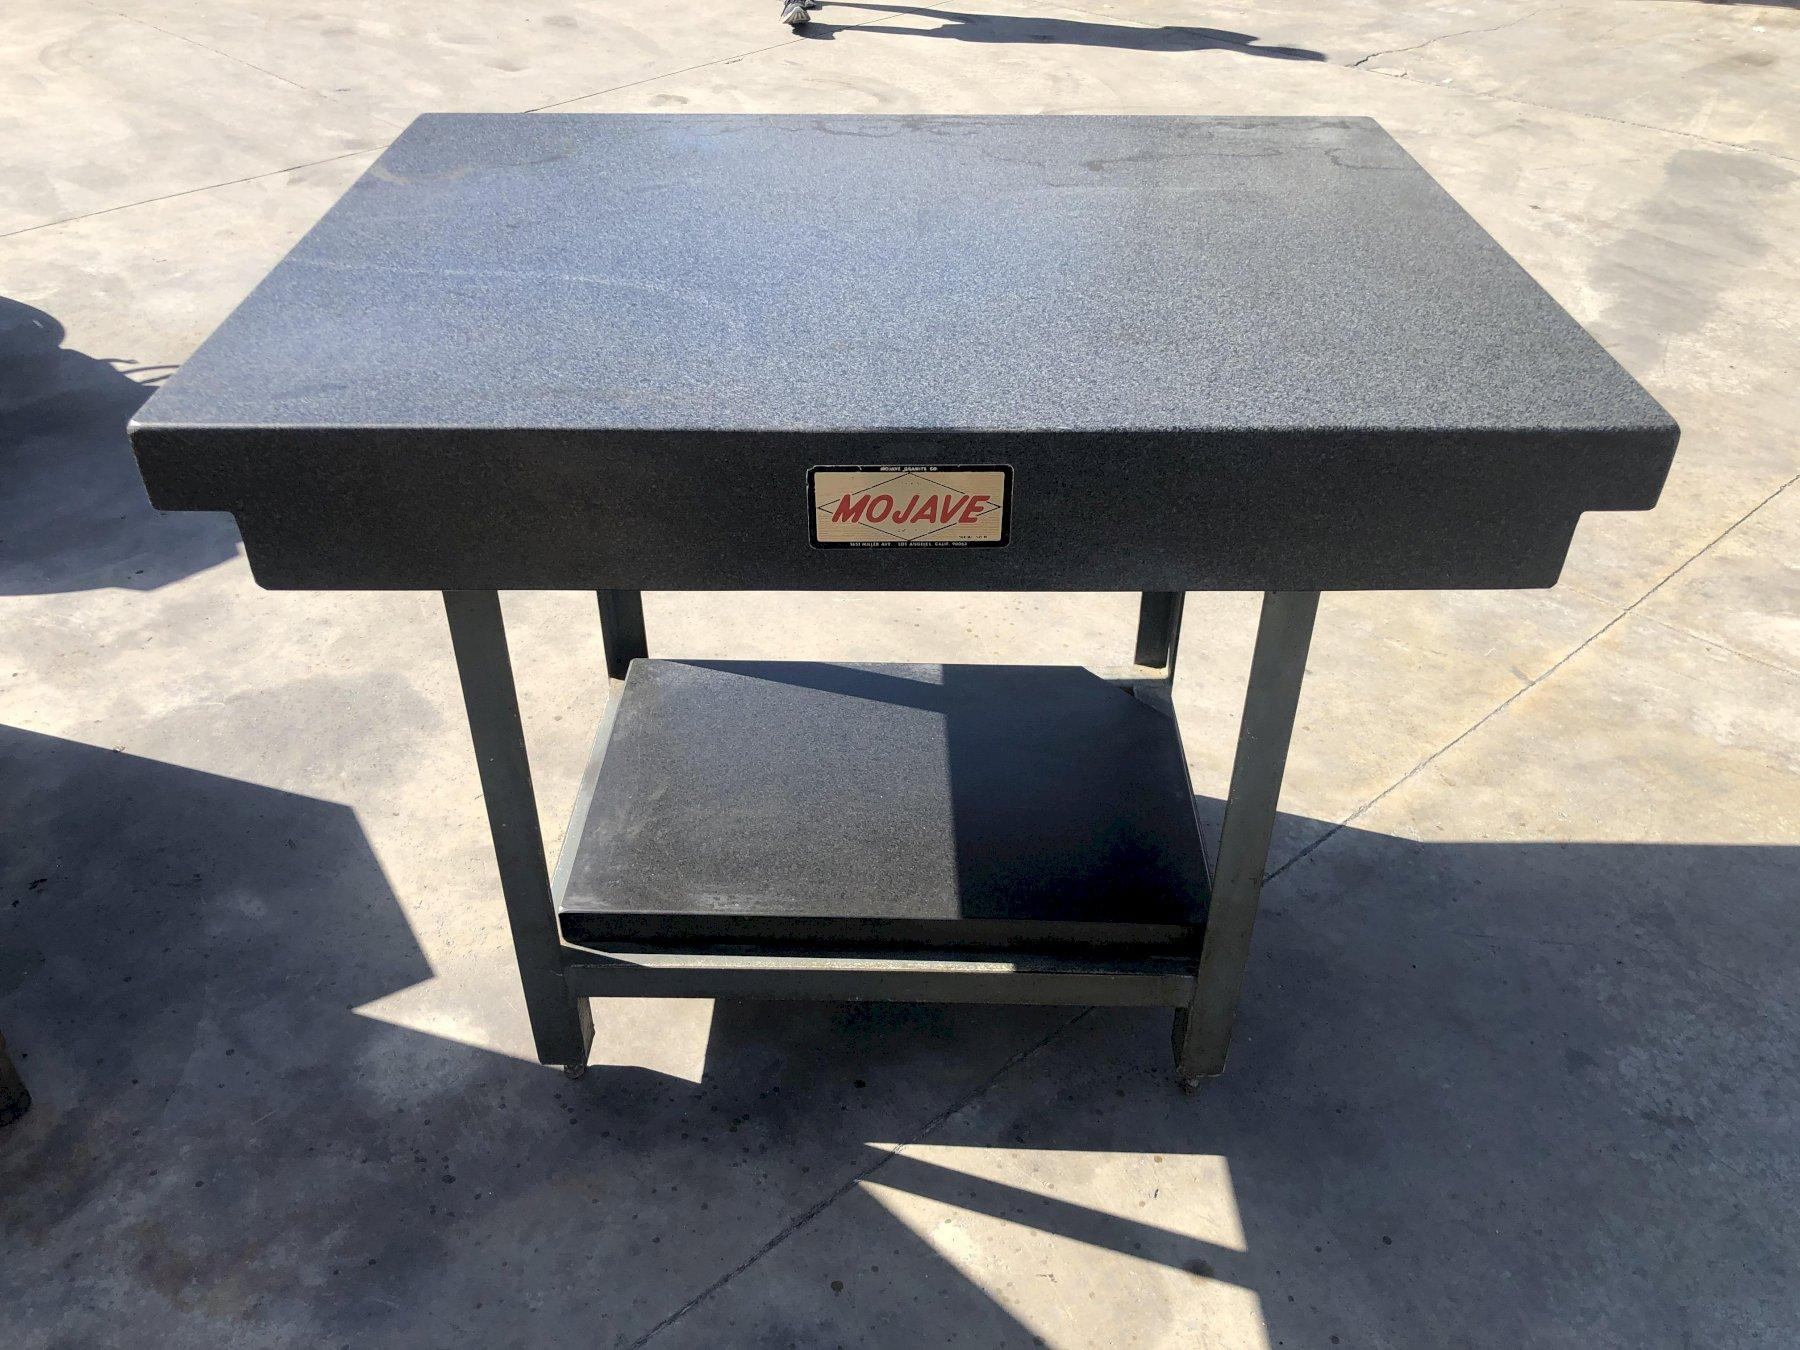 Mojave W.F. Long Surface Granite Plate 48